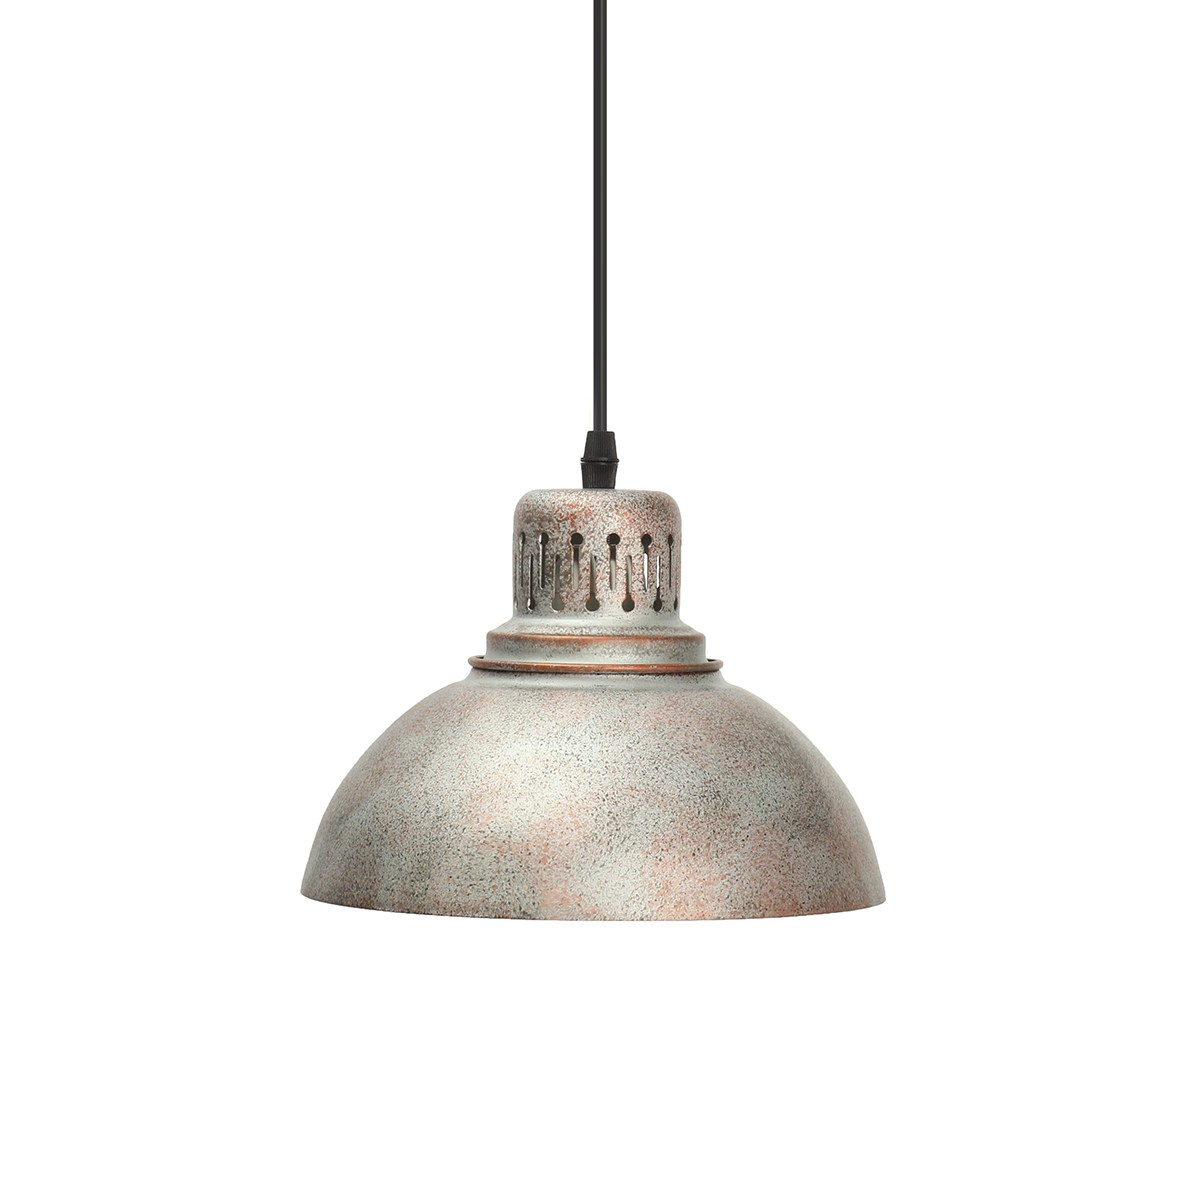 Vintage Iron Pendant Light Hanging E27 Lampshade Night Lamp Fixture Loft Bar Coffee Shop Living Room Home Decor Novelty Lighting<br>